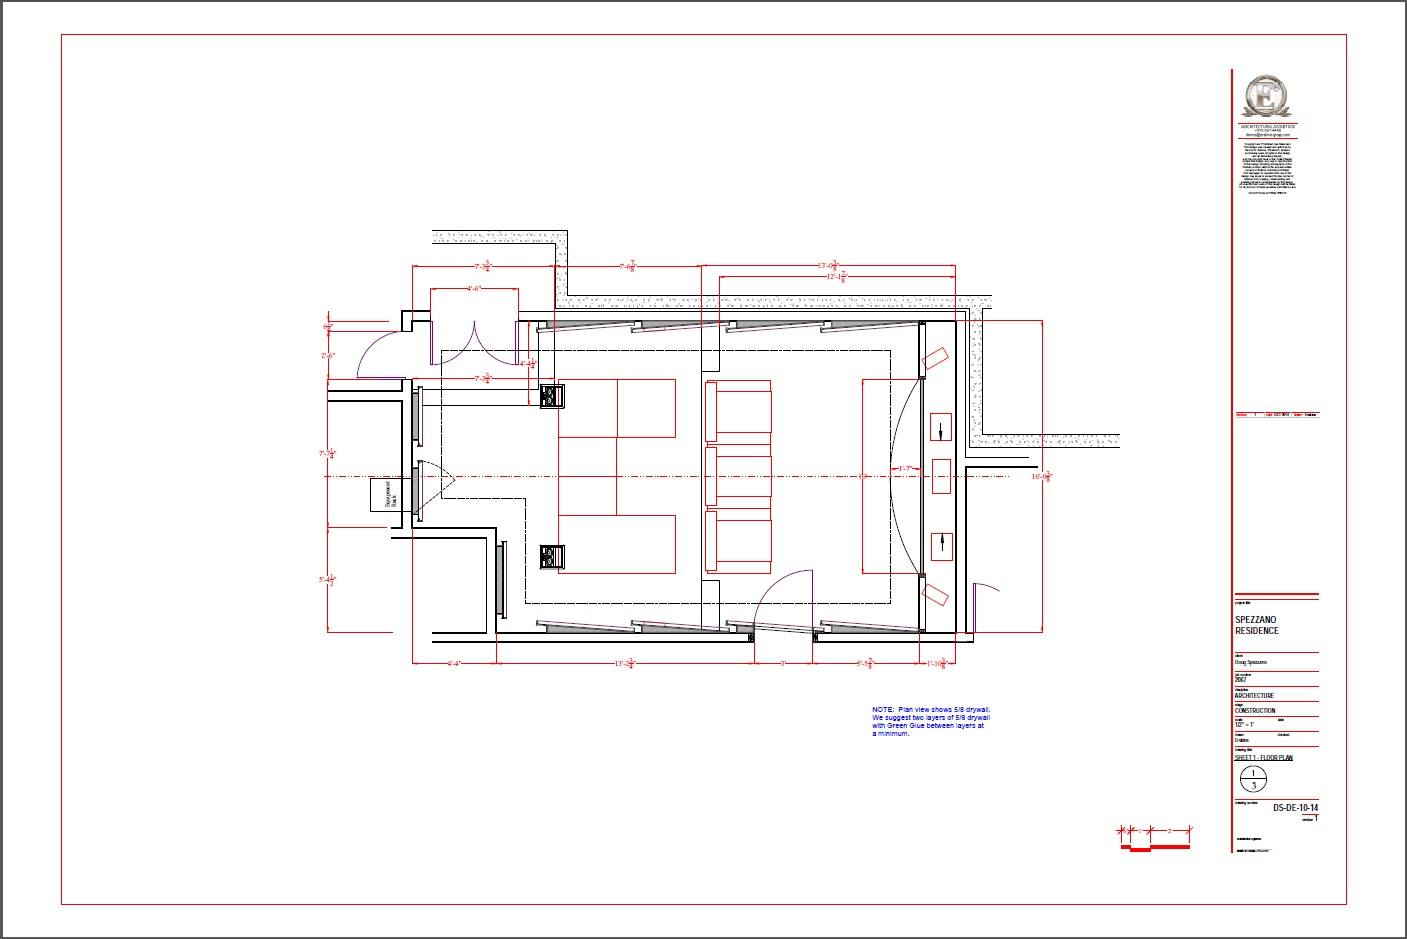 doug s remodel build th page 2 avs forum home theater i also got clarification on his releasability rules so here s the official erskine group design for the theater